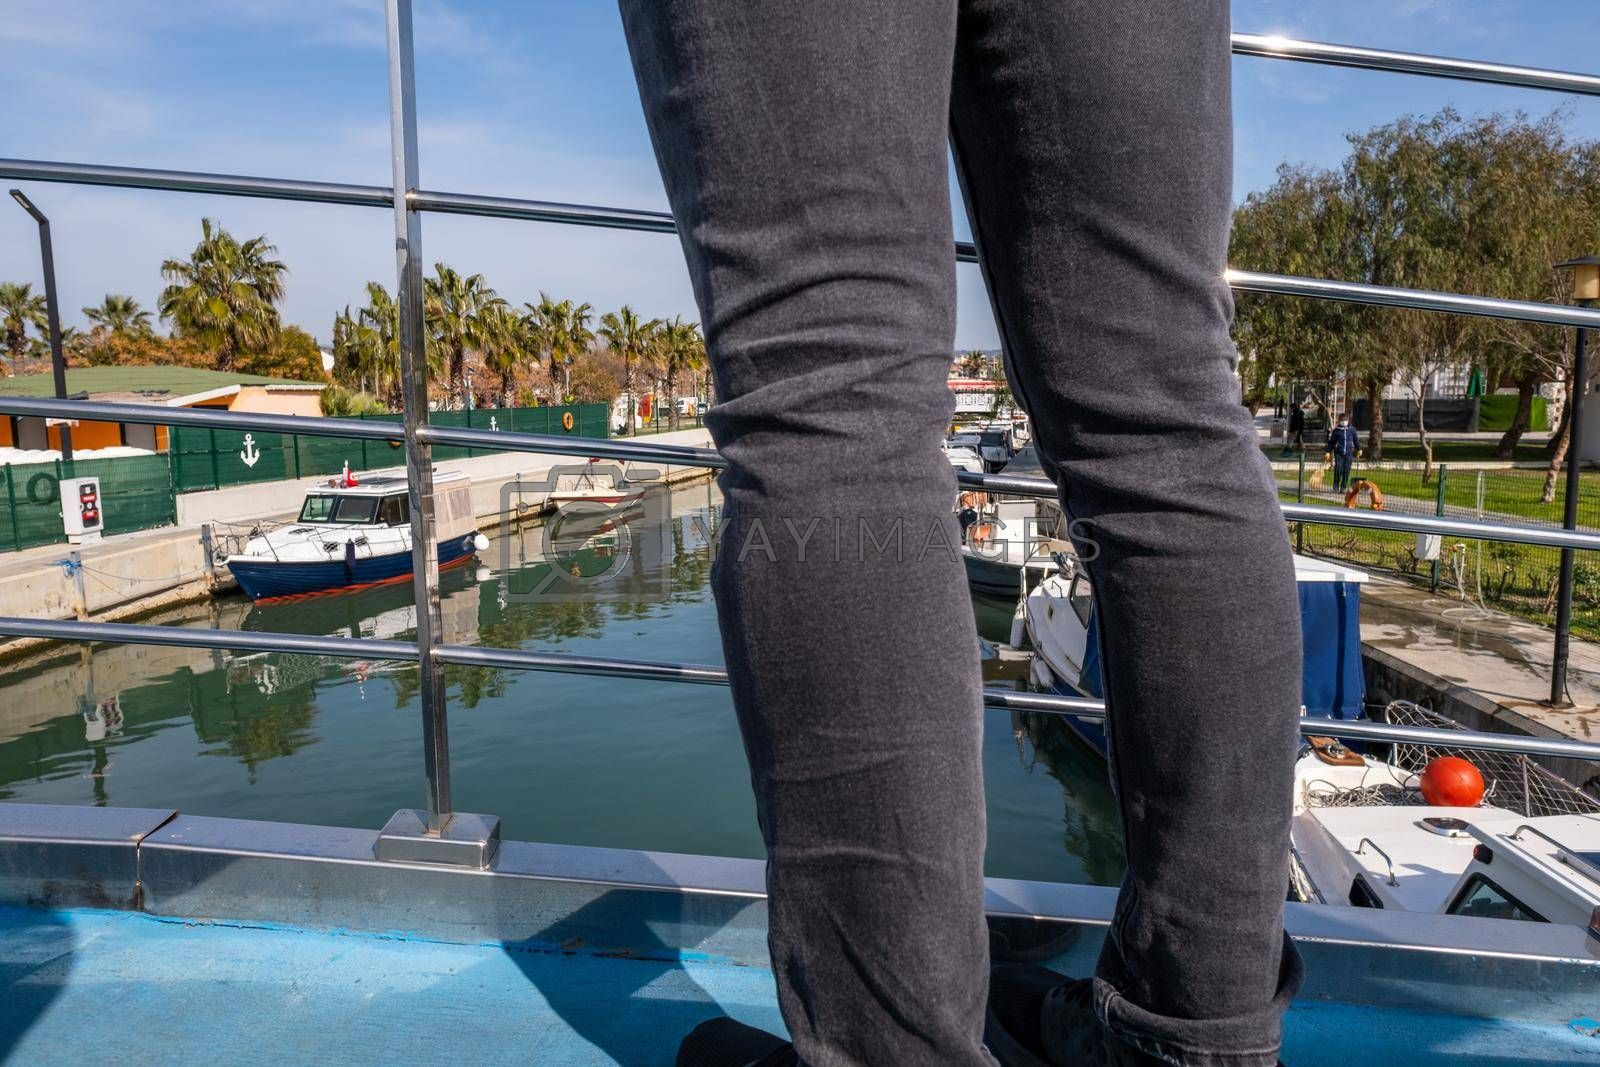 river and boats and a male person standing on a bridge in town in holiday time